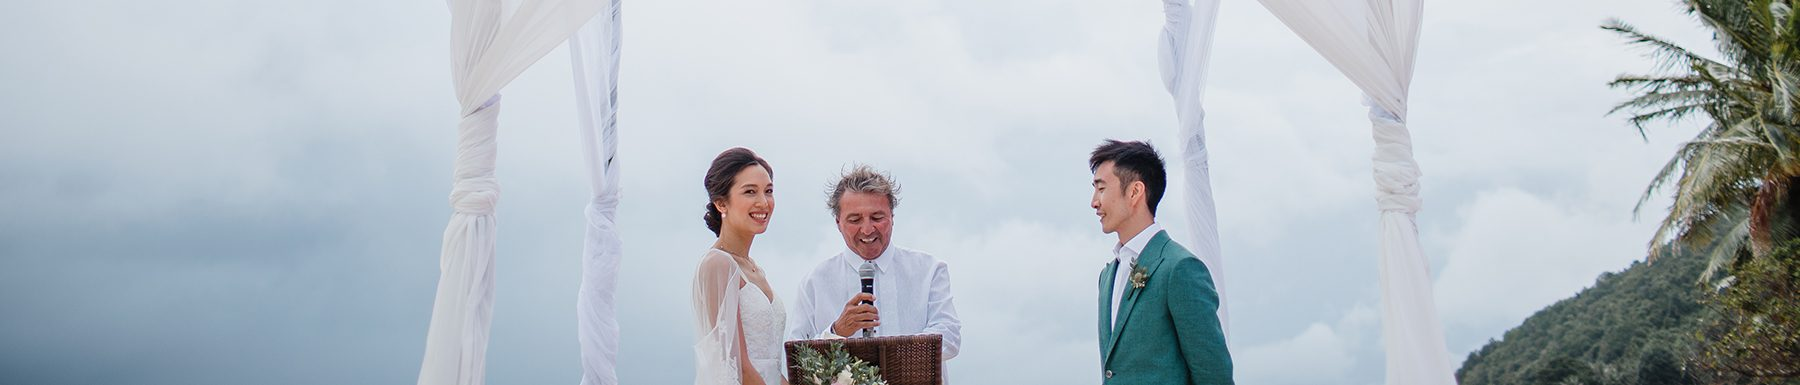 Amanda & Ken | El Nido Wedding Photographer